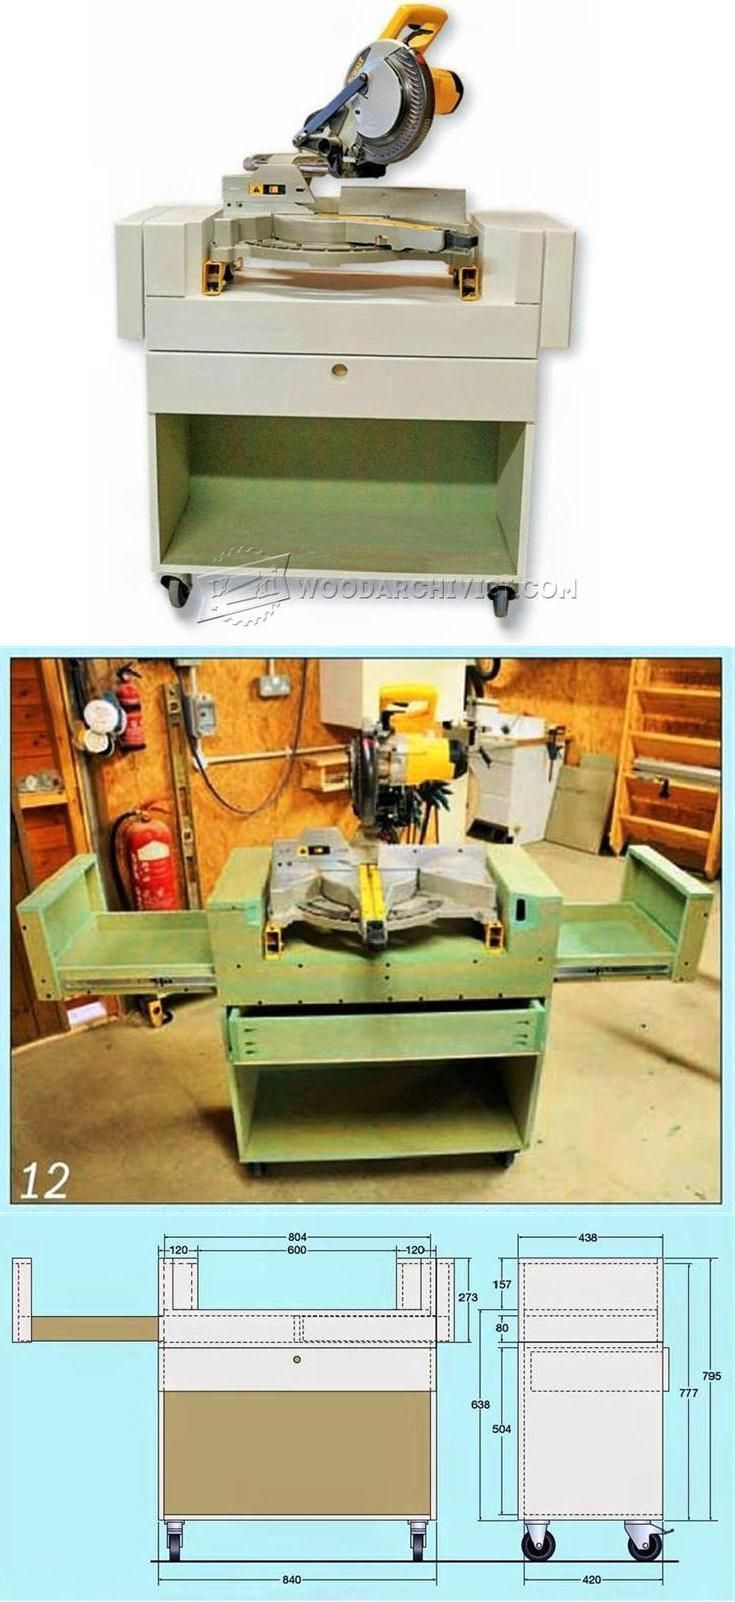 Mobile Miter Saw Stand Plans - Miter Saw Tips, Jigs and Fixtures | WoodArchivist.com #mitersaw